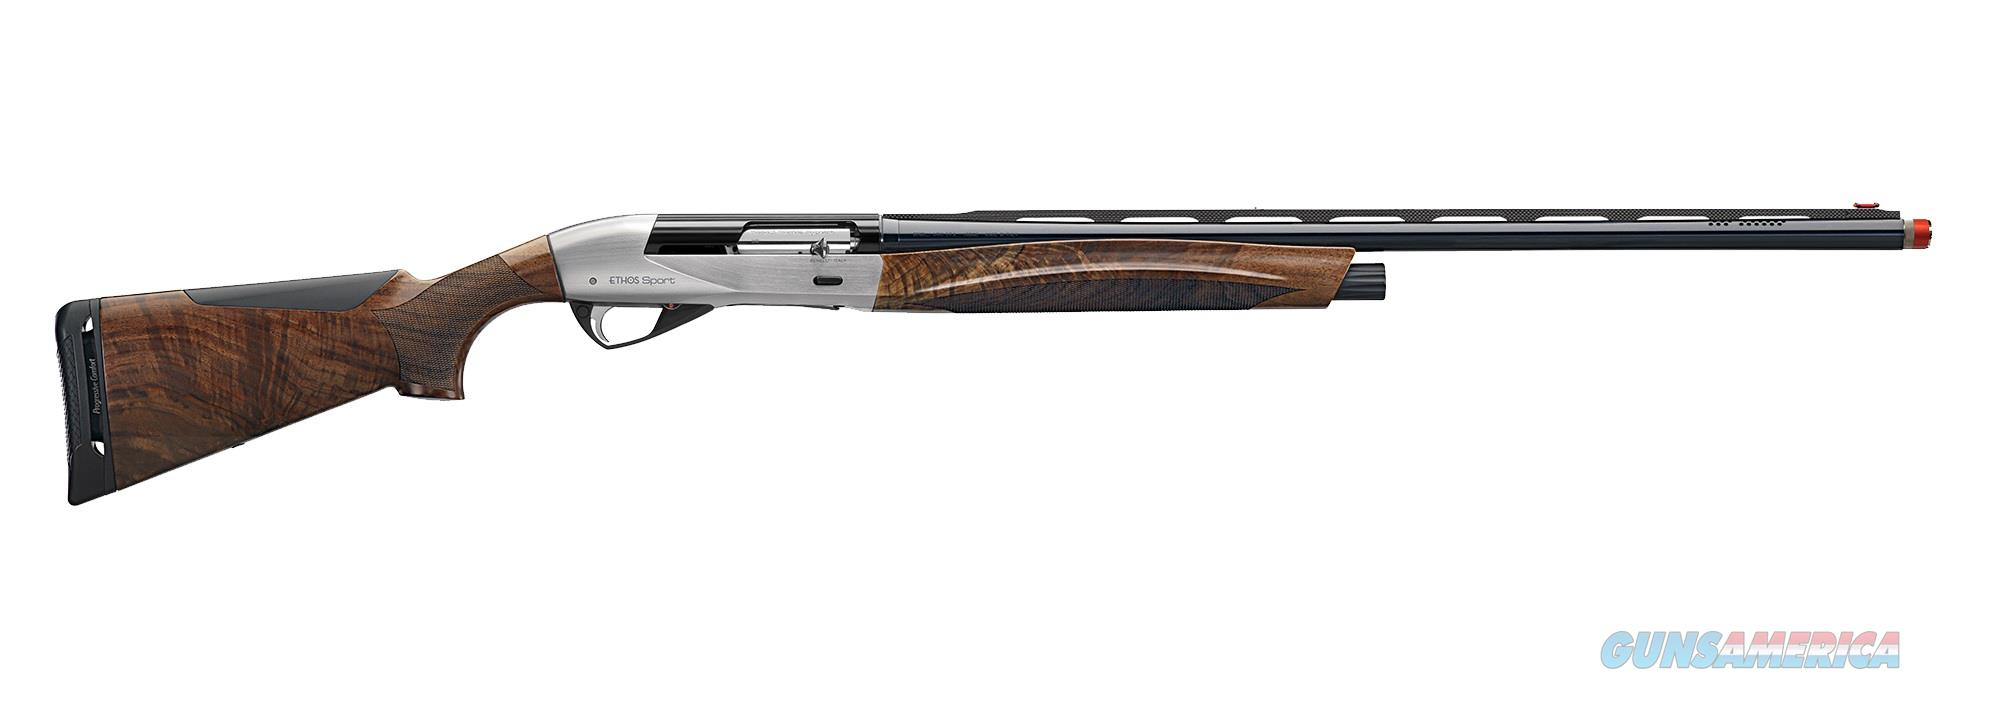 "Benelli ETHOS Sport 12 Gauge 30"" Walnut/Nickel 10495   Guns > Shotguns > Benelli Shotguns > Sporting"